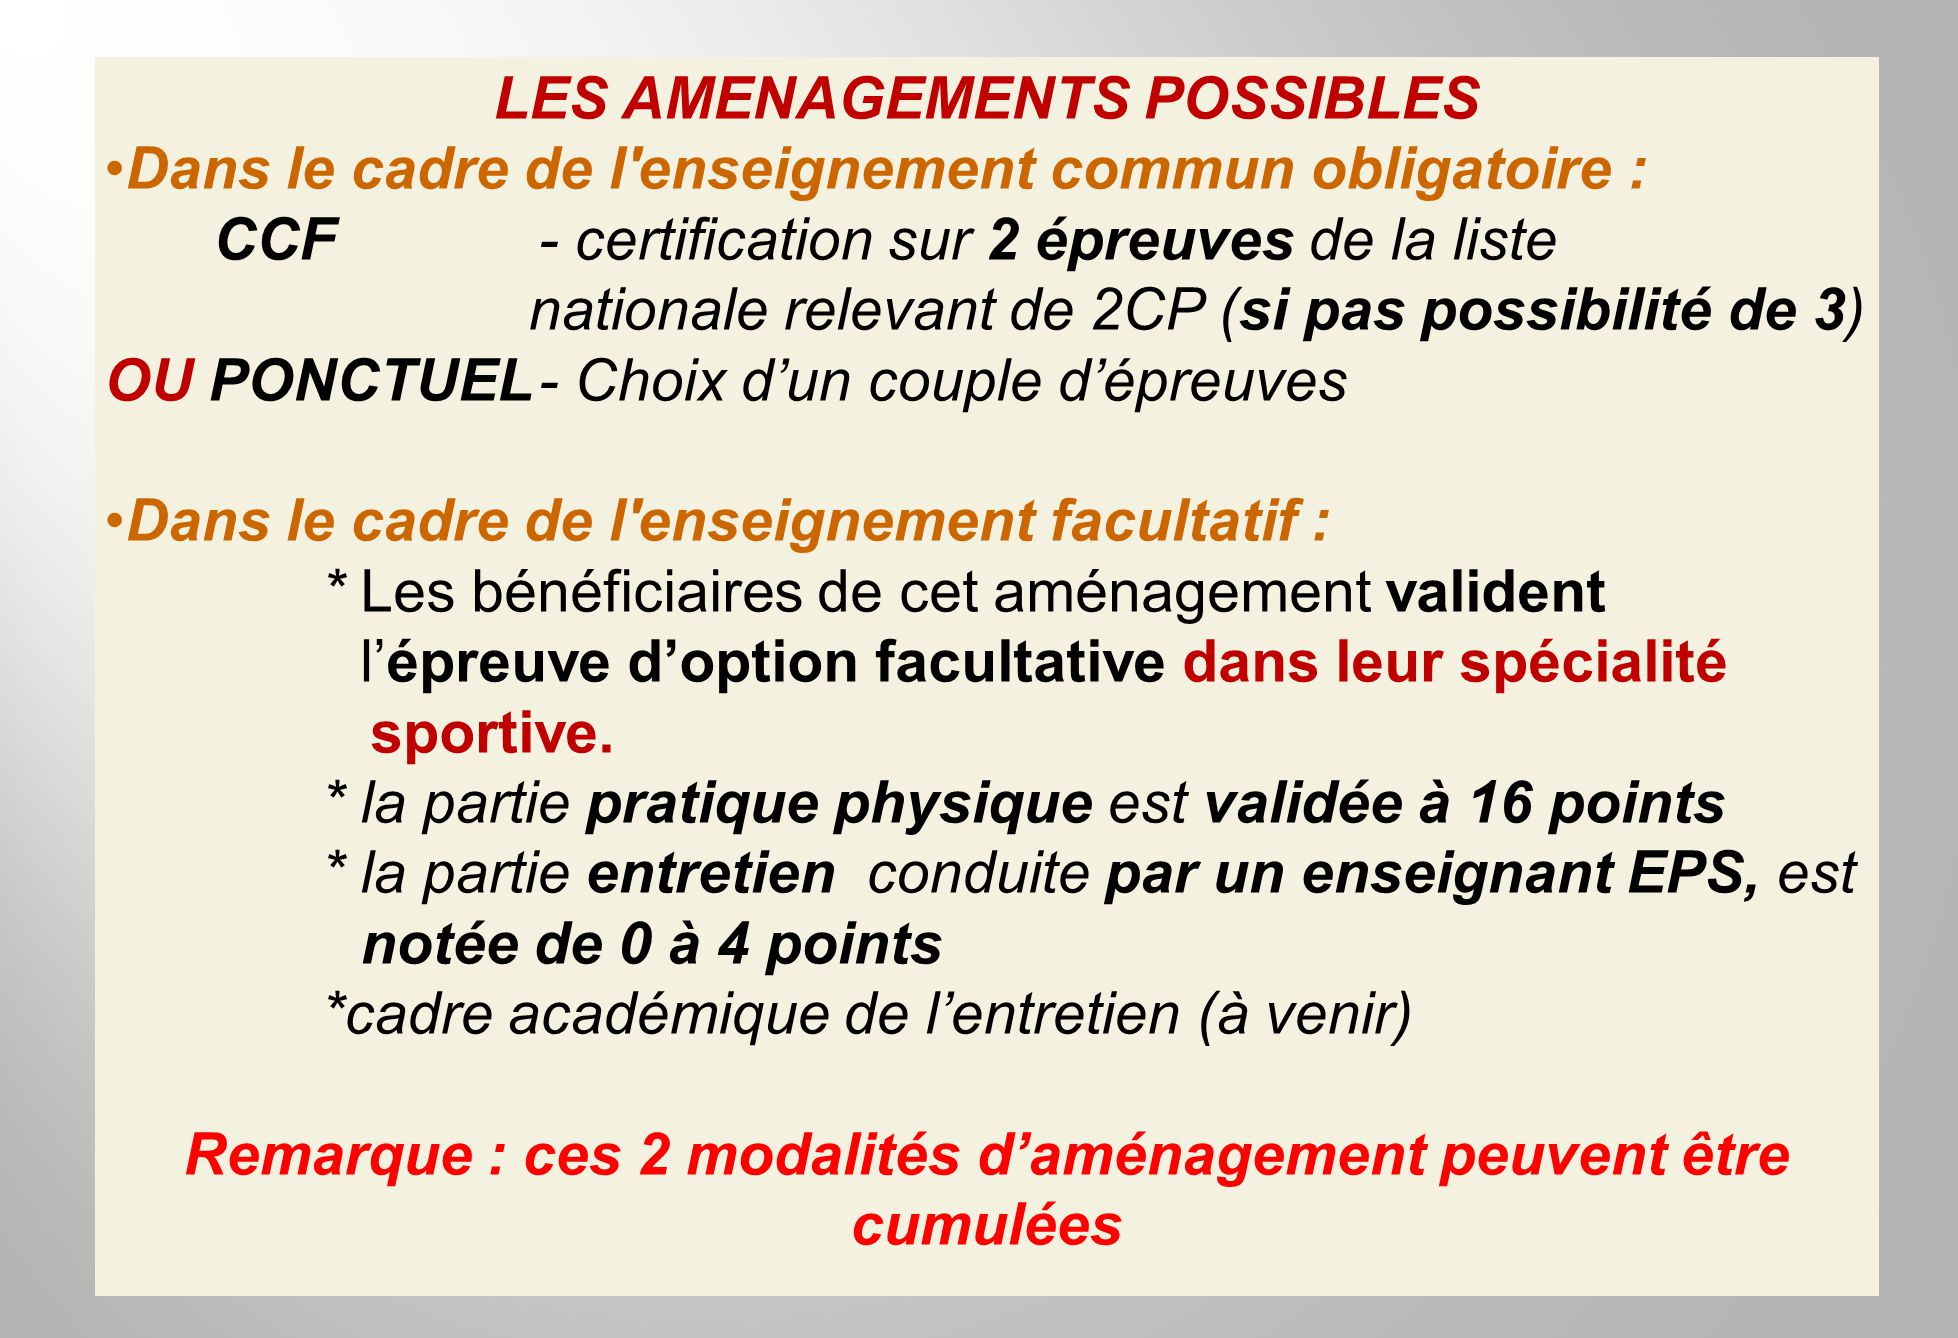 LES AMENAGEMENTS POSSIBLES